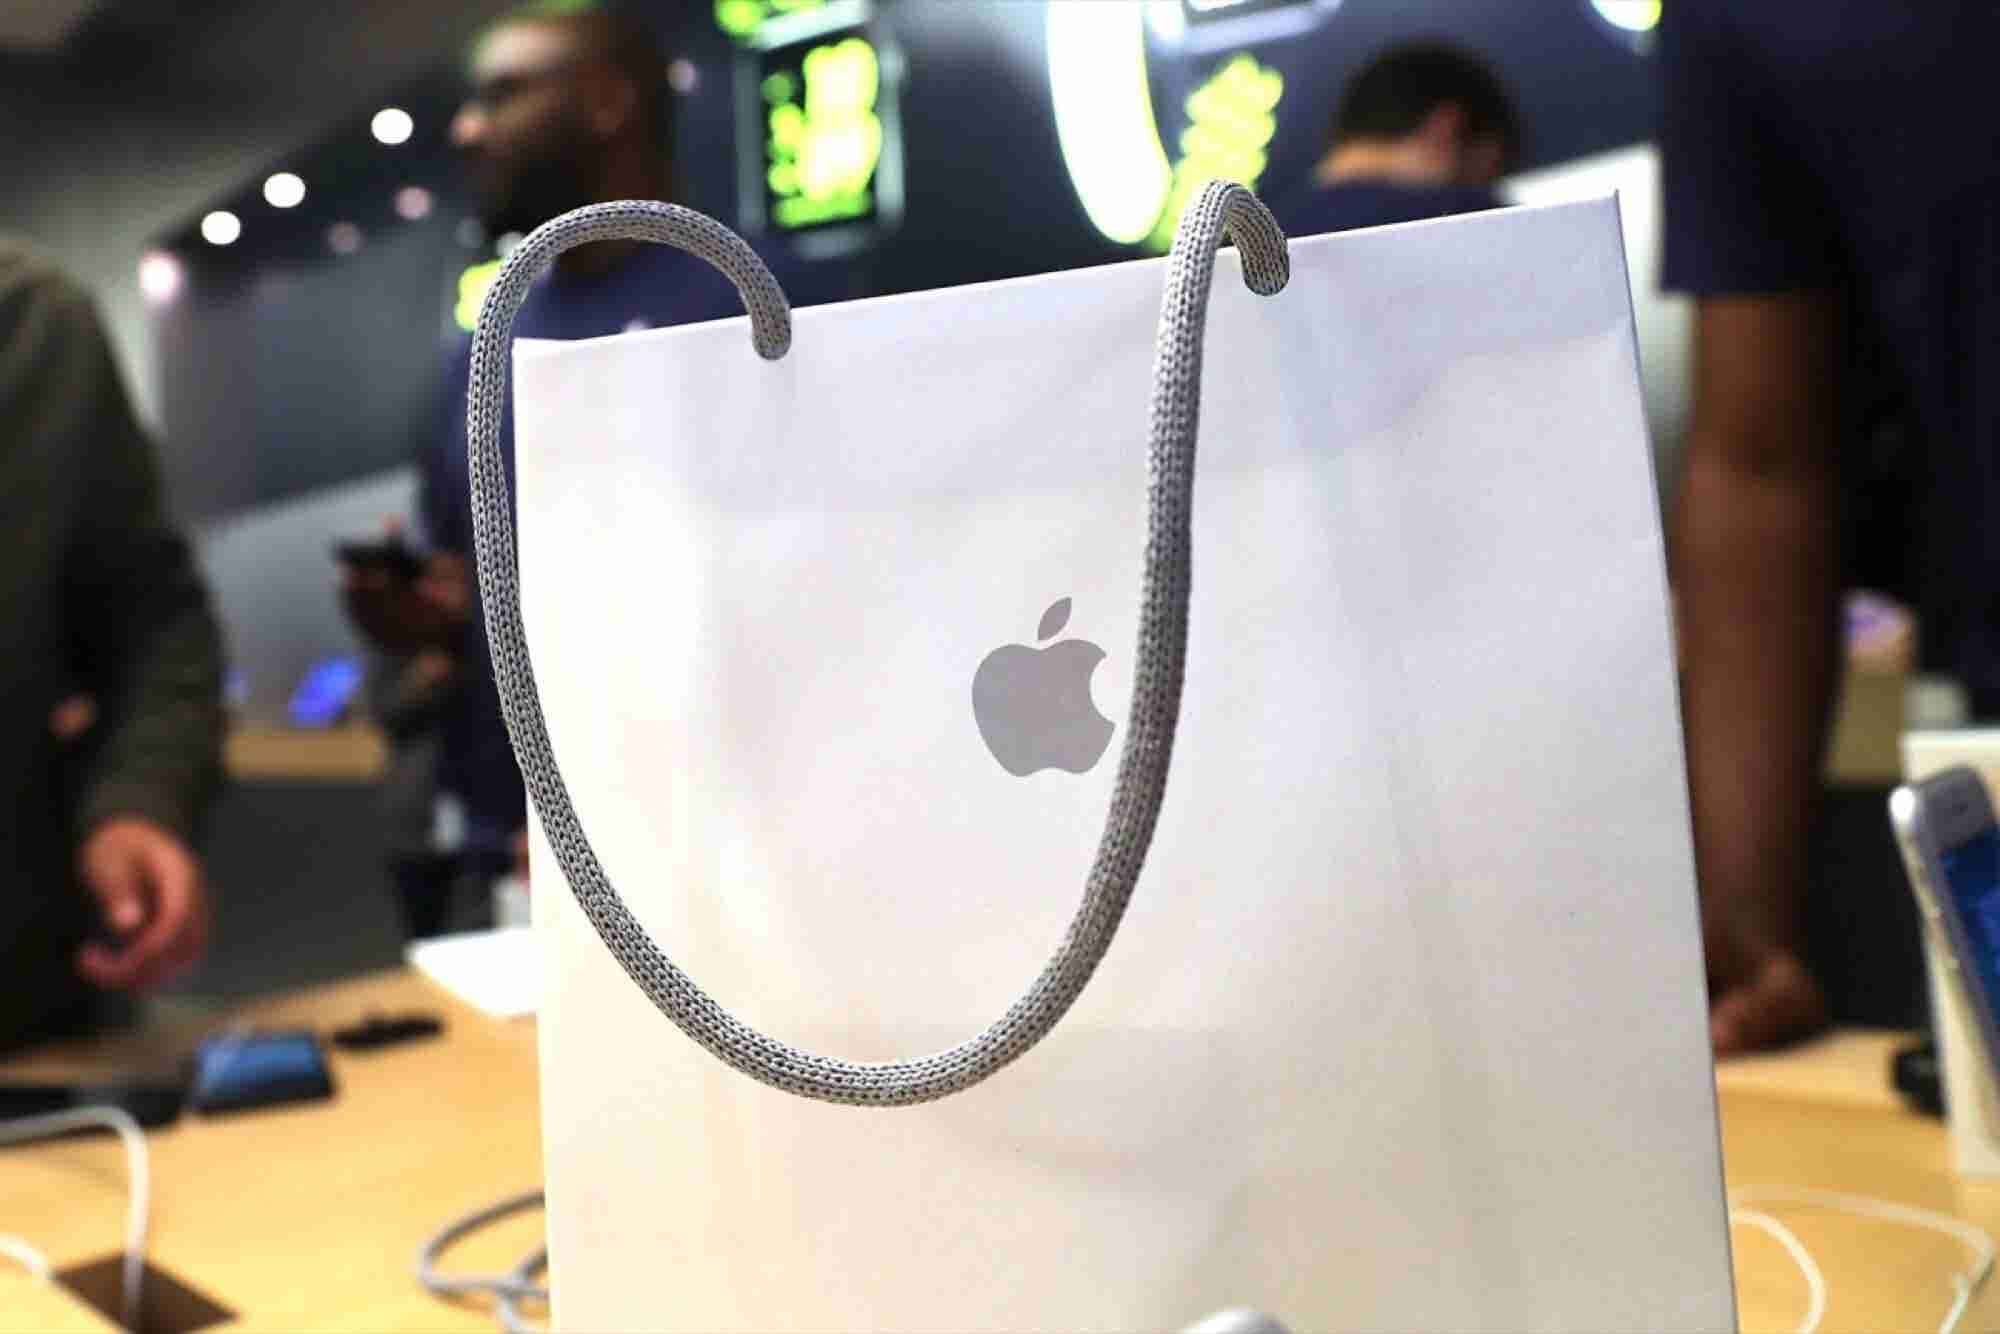 Apple Files a Patent for a Paper Bag